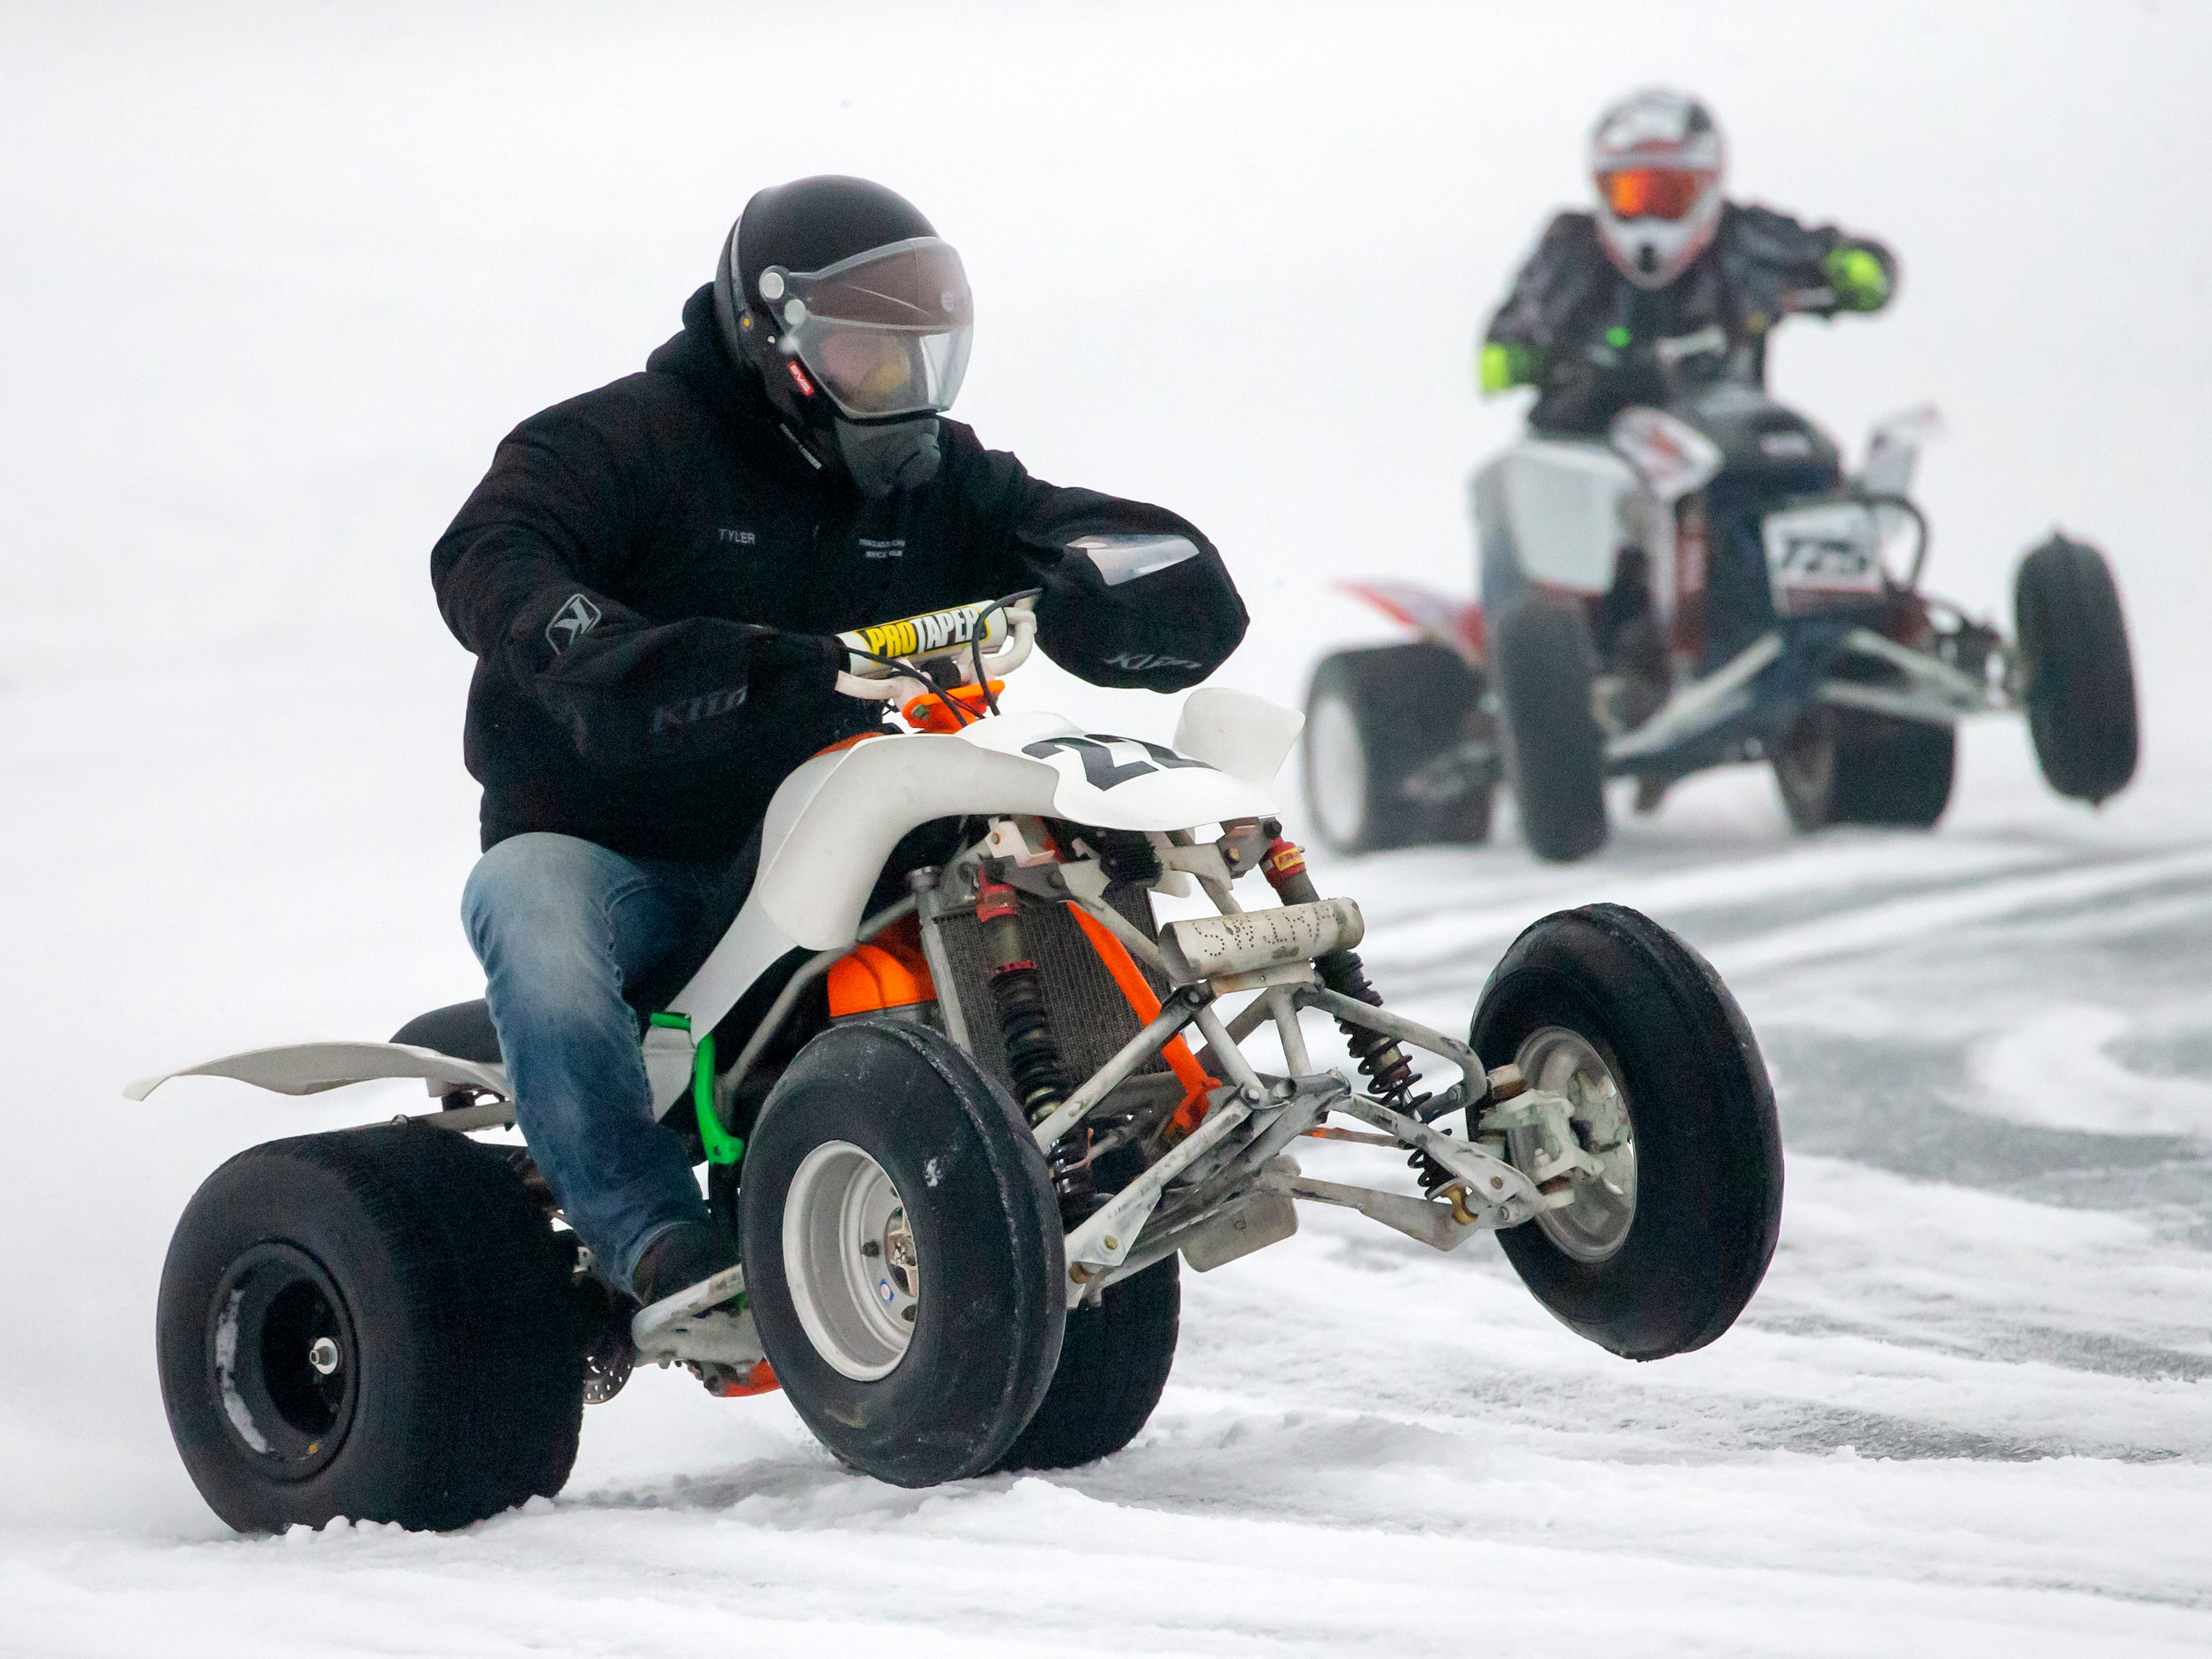 Drivers on ATVs race during the Otter Street Fishing Club Winter Fisheree at Miller's Bay in Menominee Park on Saturday, Feb. 2, 2019.